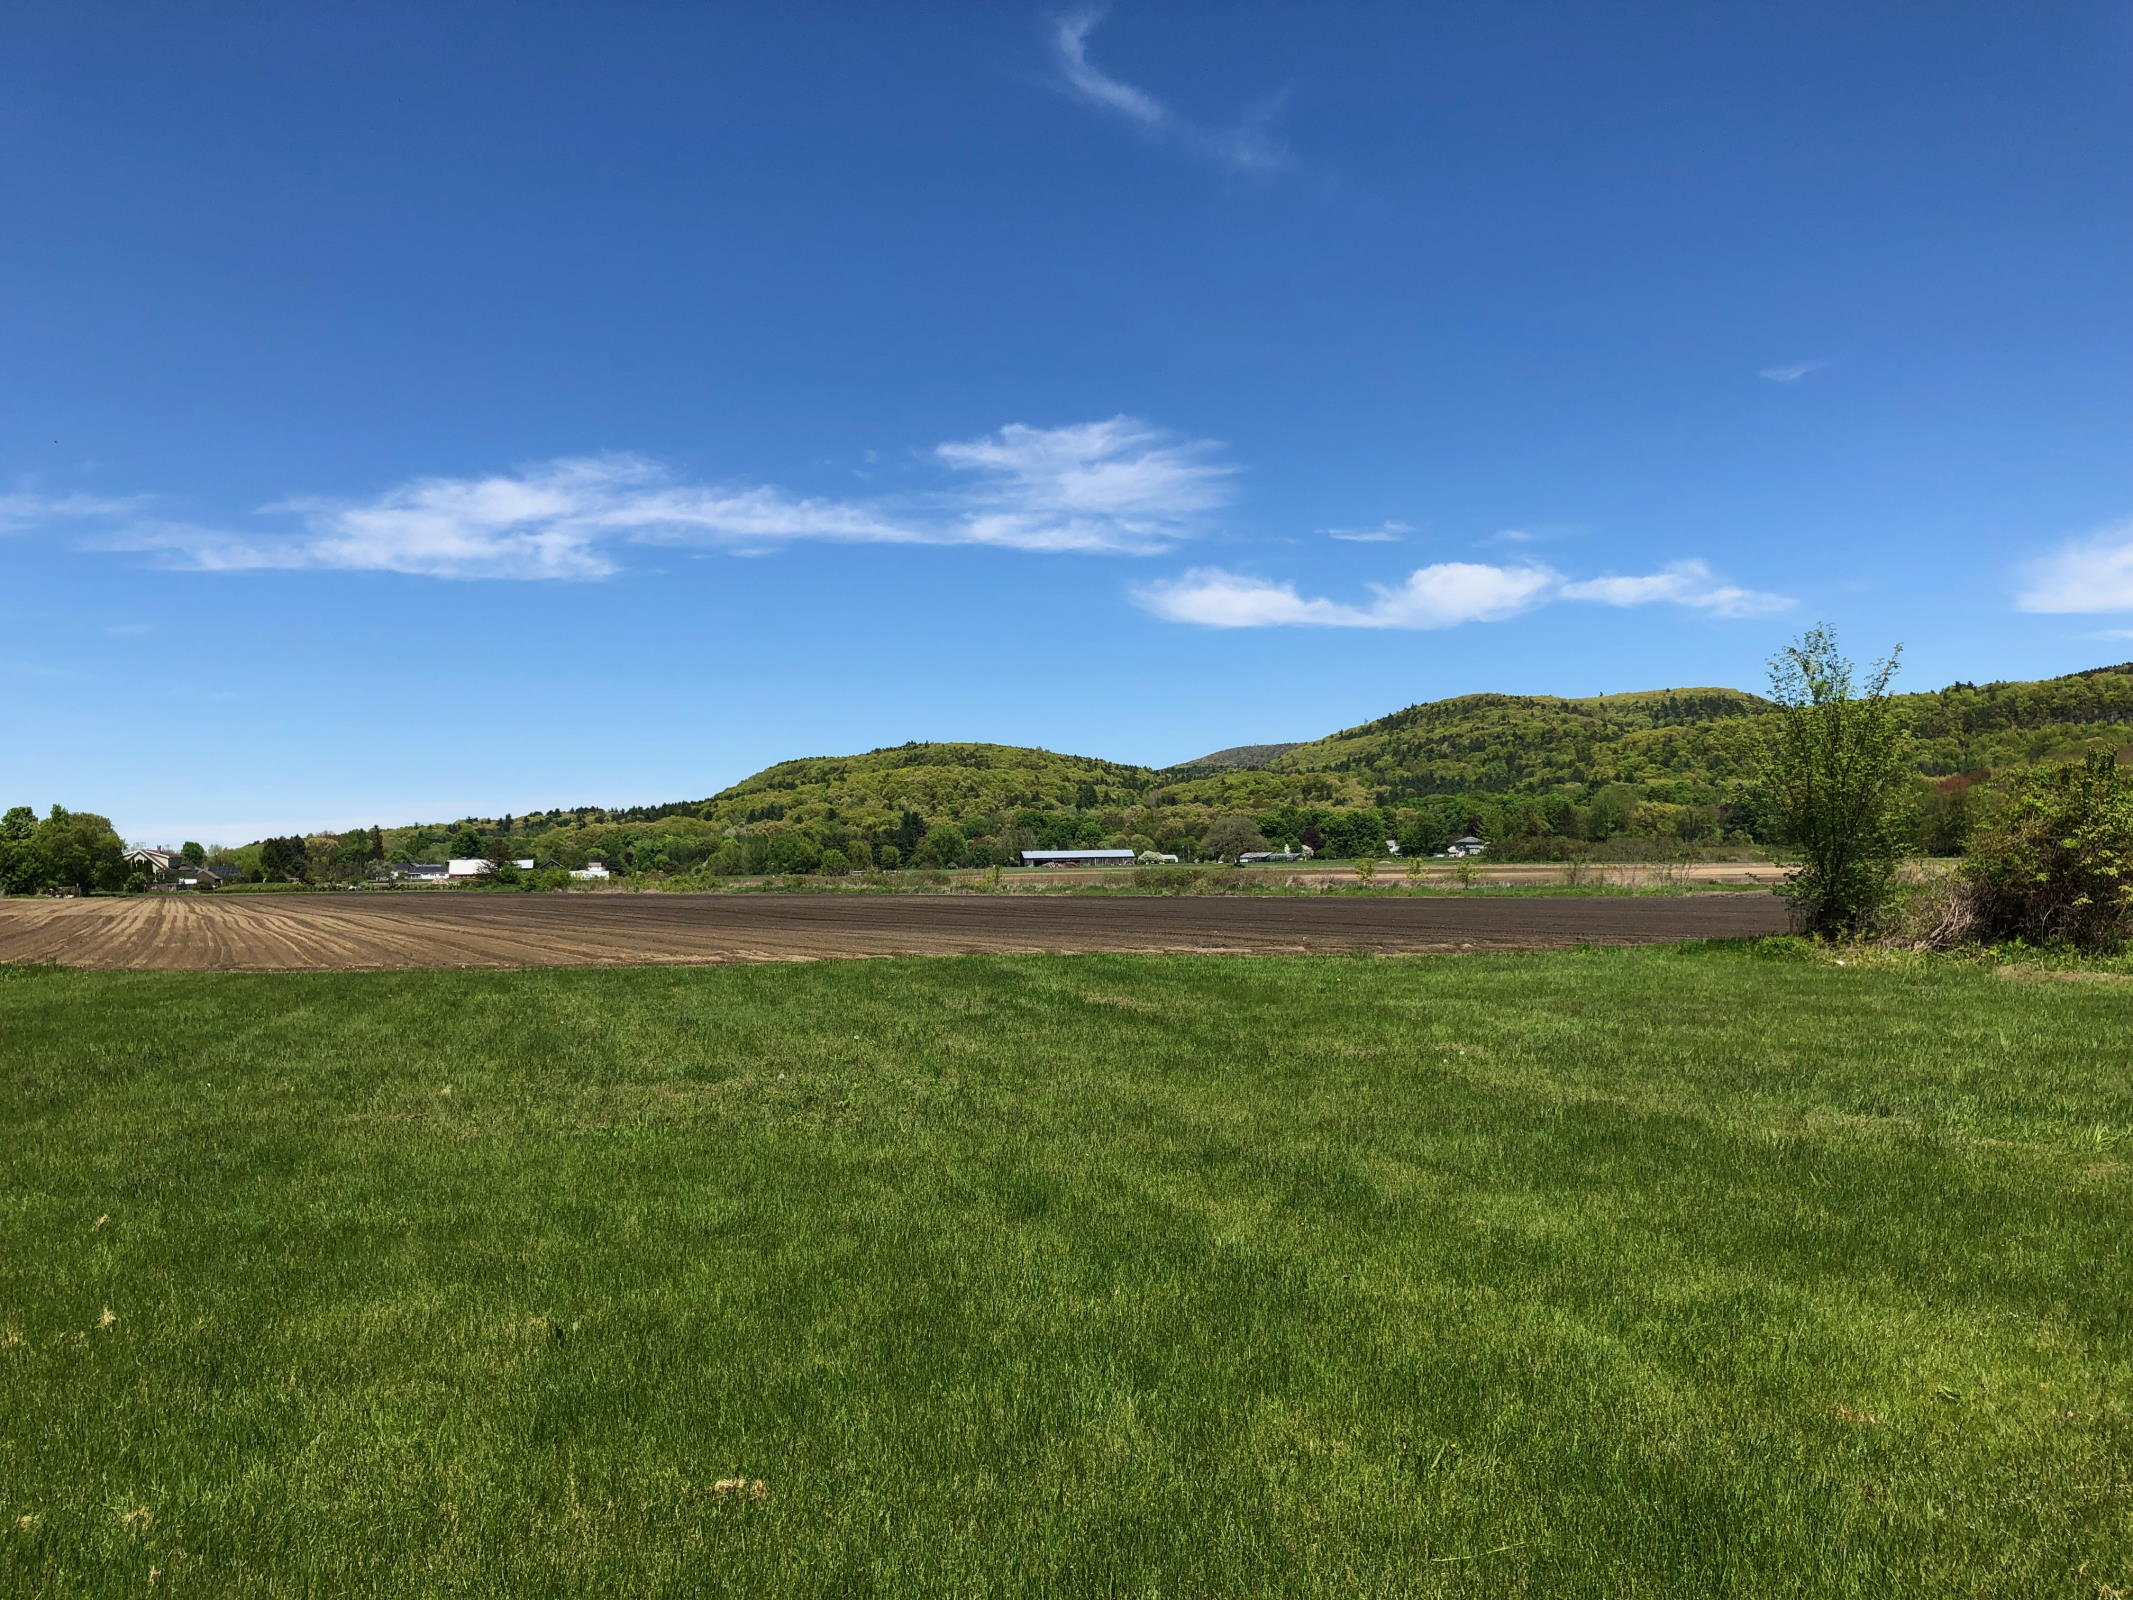 View of the pasture and hills by Reed Farm in Sunderland, Massachusetts